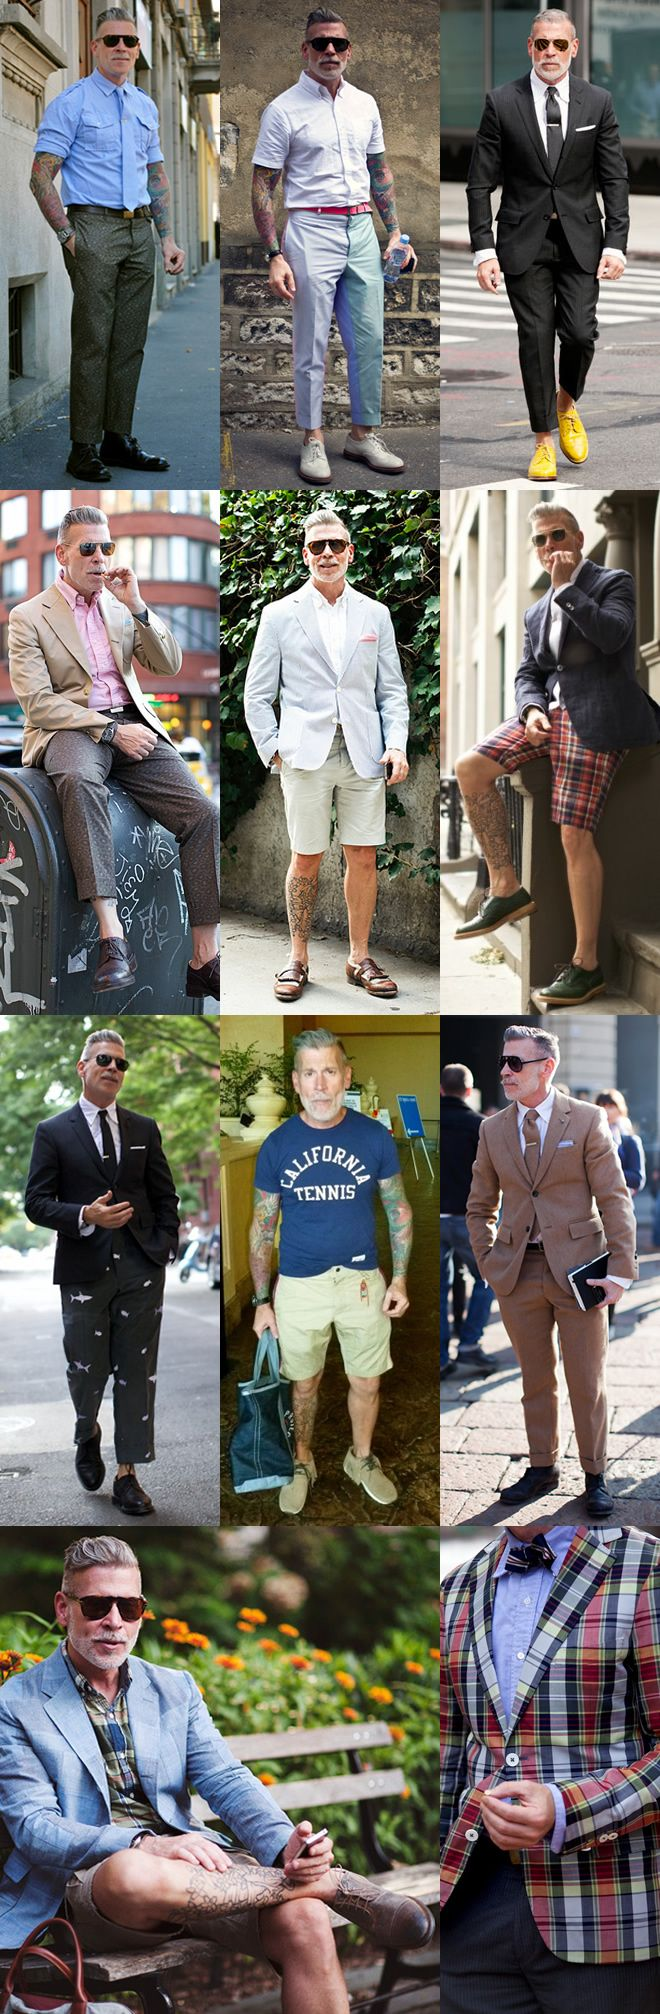 When I grow up I want to be as cool as this guy. Nick Wooster: boss of cool.